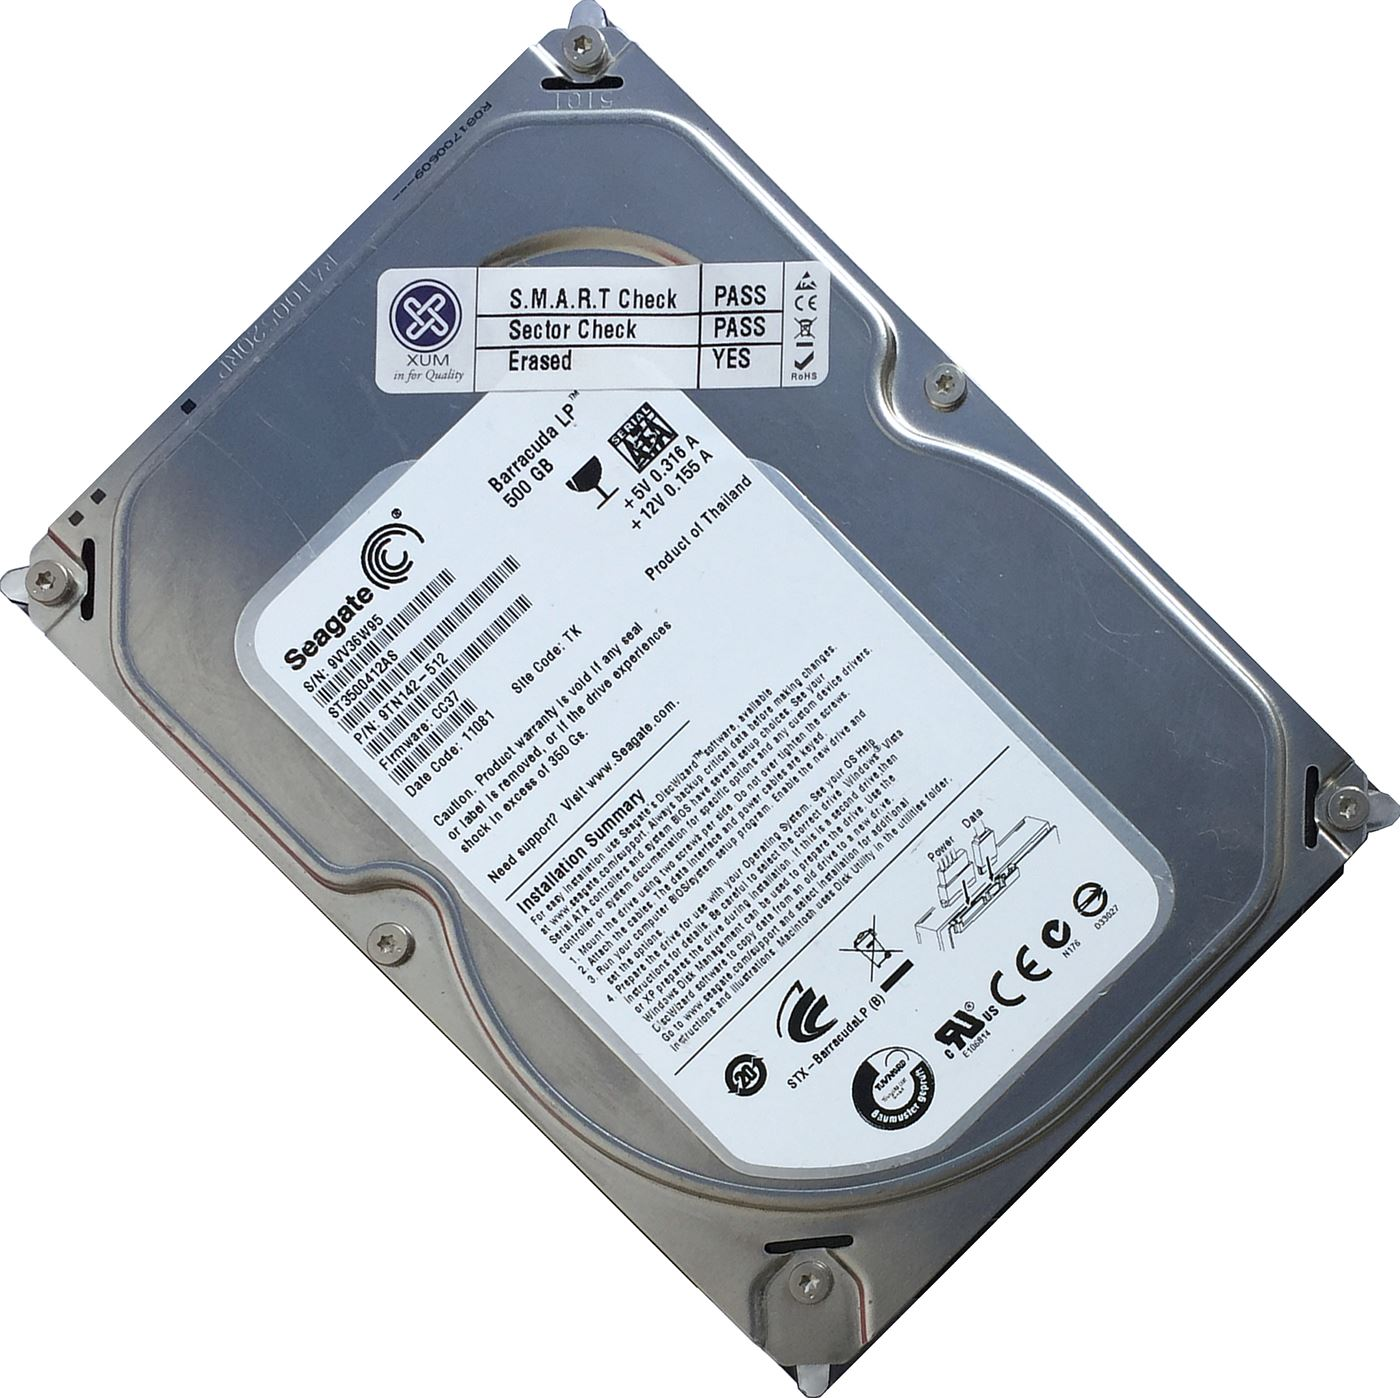 500GB-3-5-034-SATA-Hard-Drive-Internal-HDD-DESKTOP-COMPUTER-PC-CCTV-DVR-DISK-LOT miniatuur 8